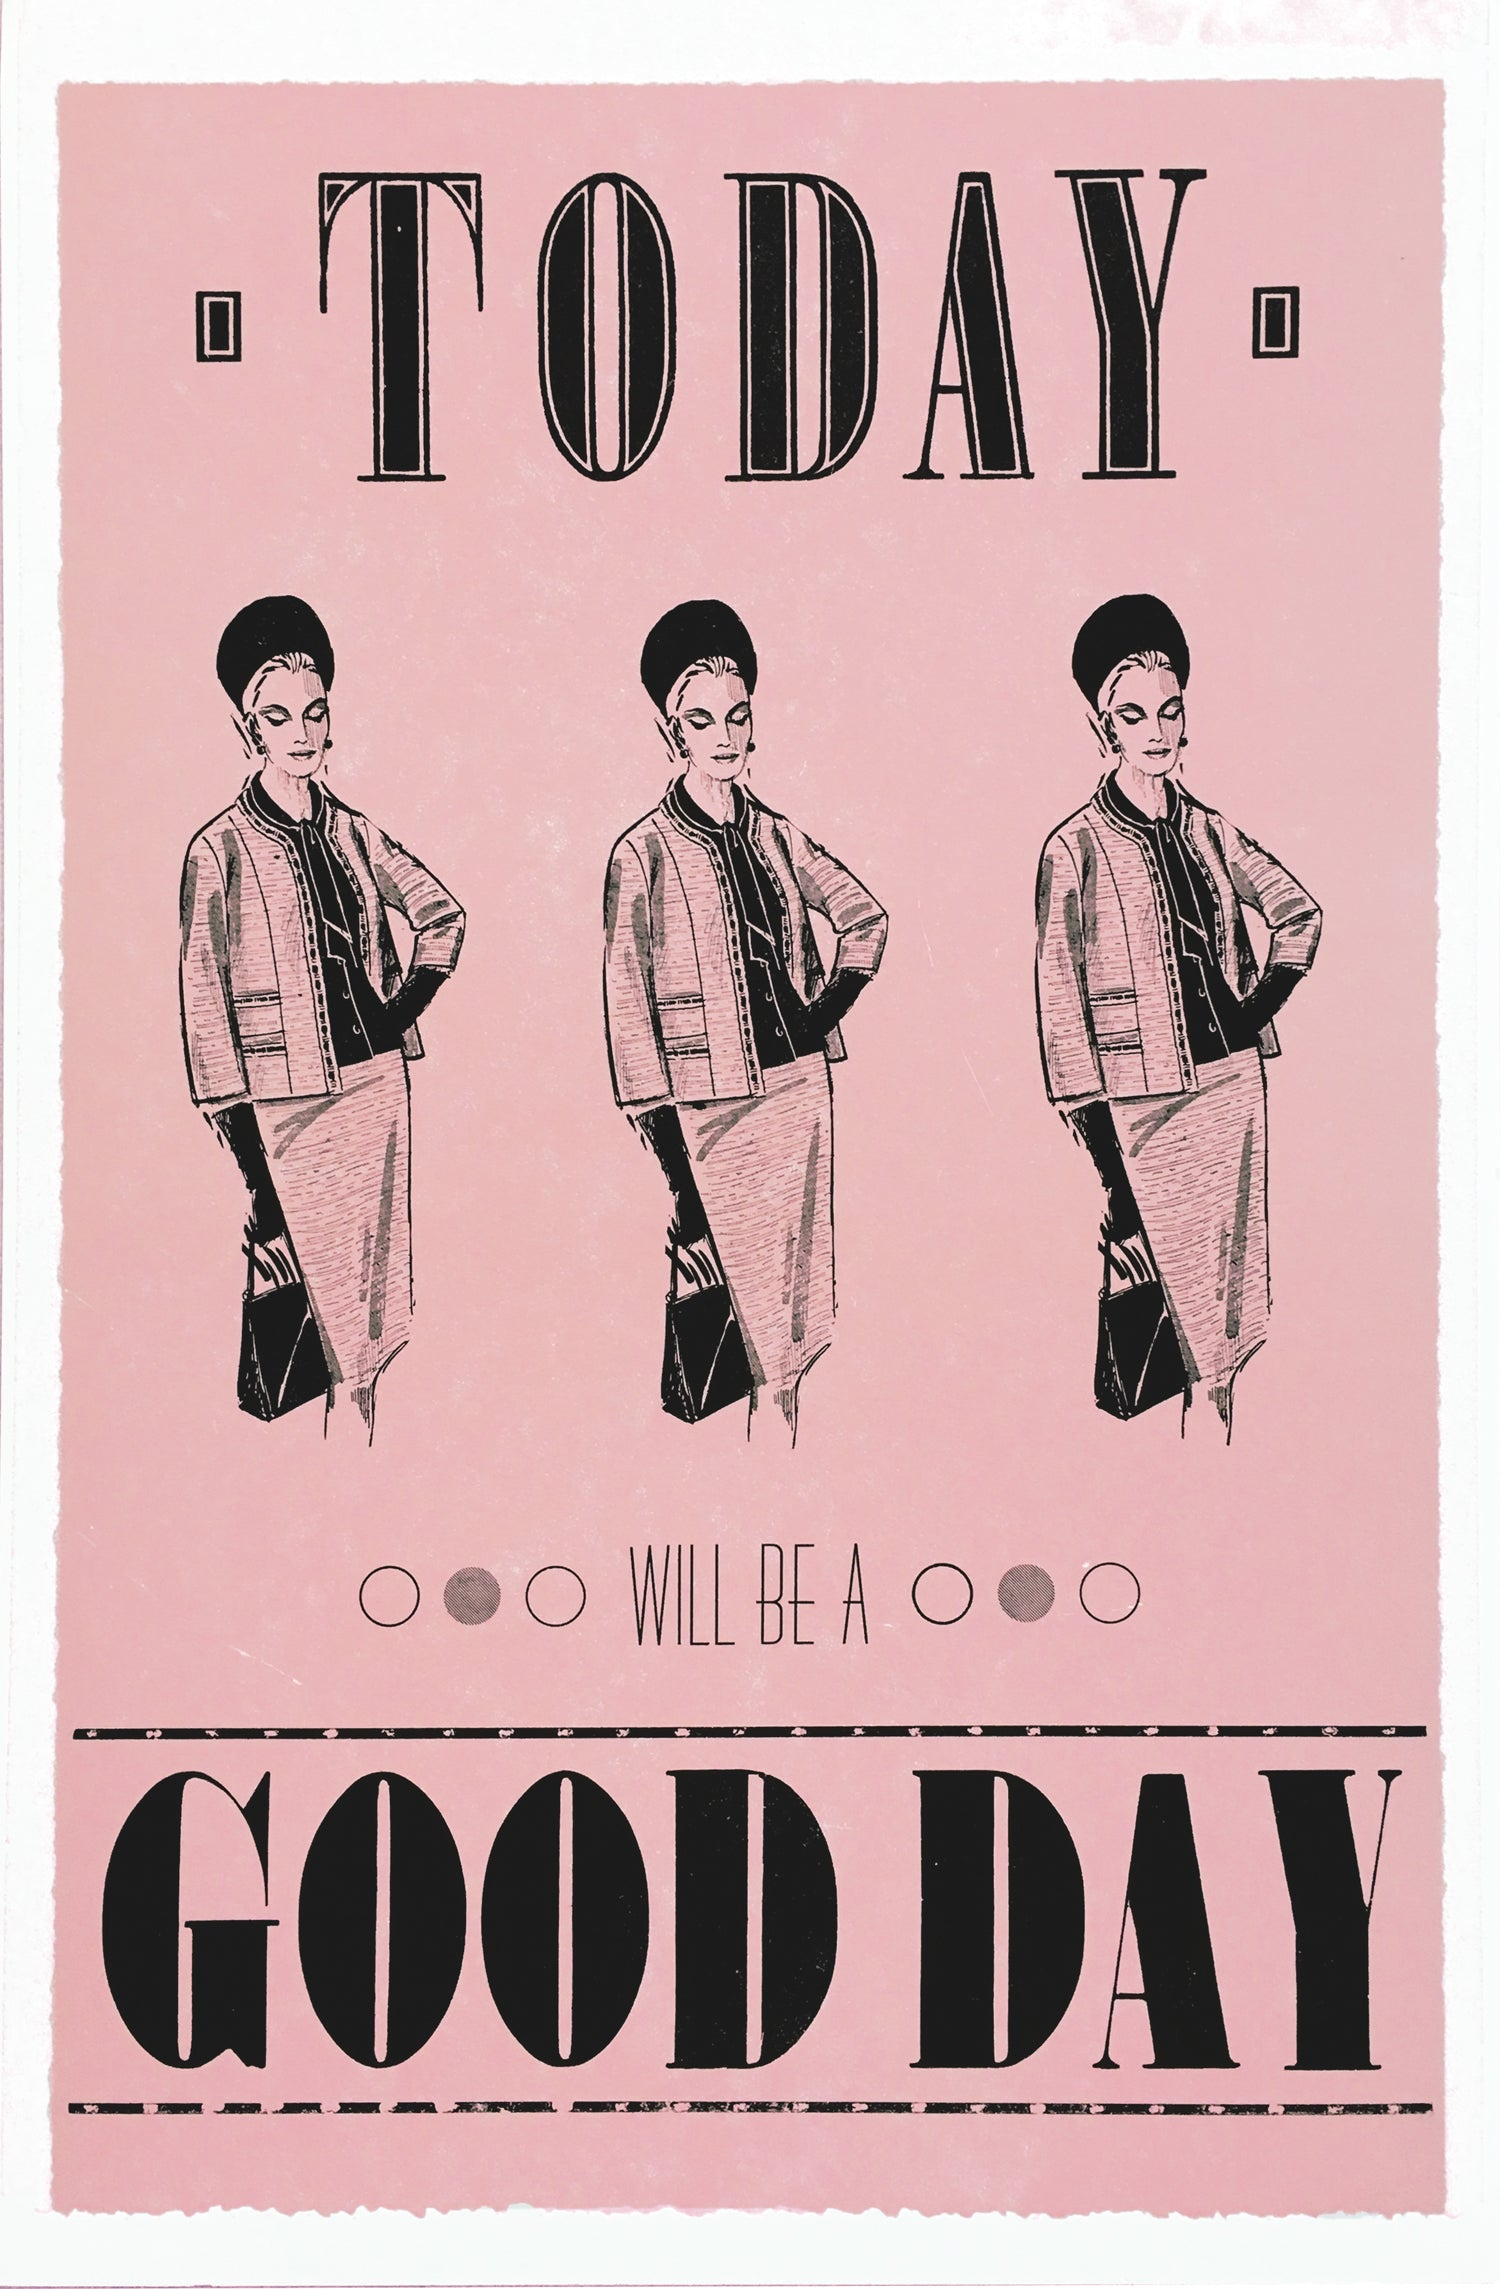 Today will be a good day positive motivational letterpress poster she persisted